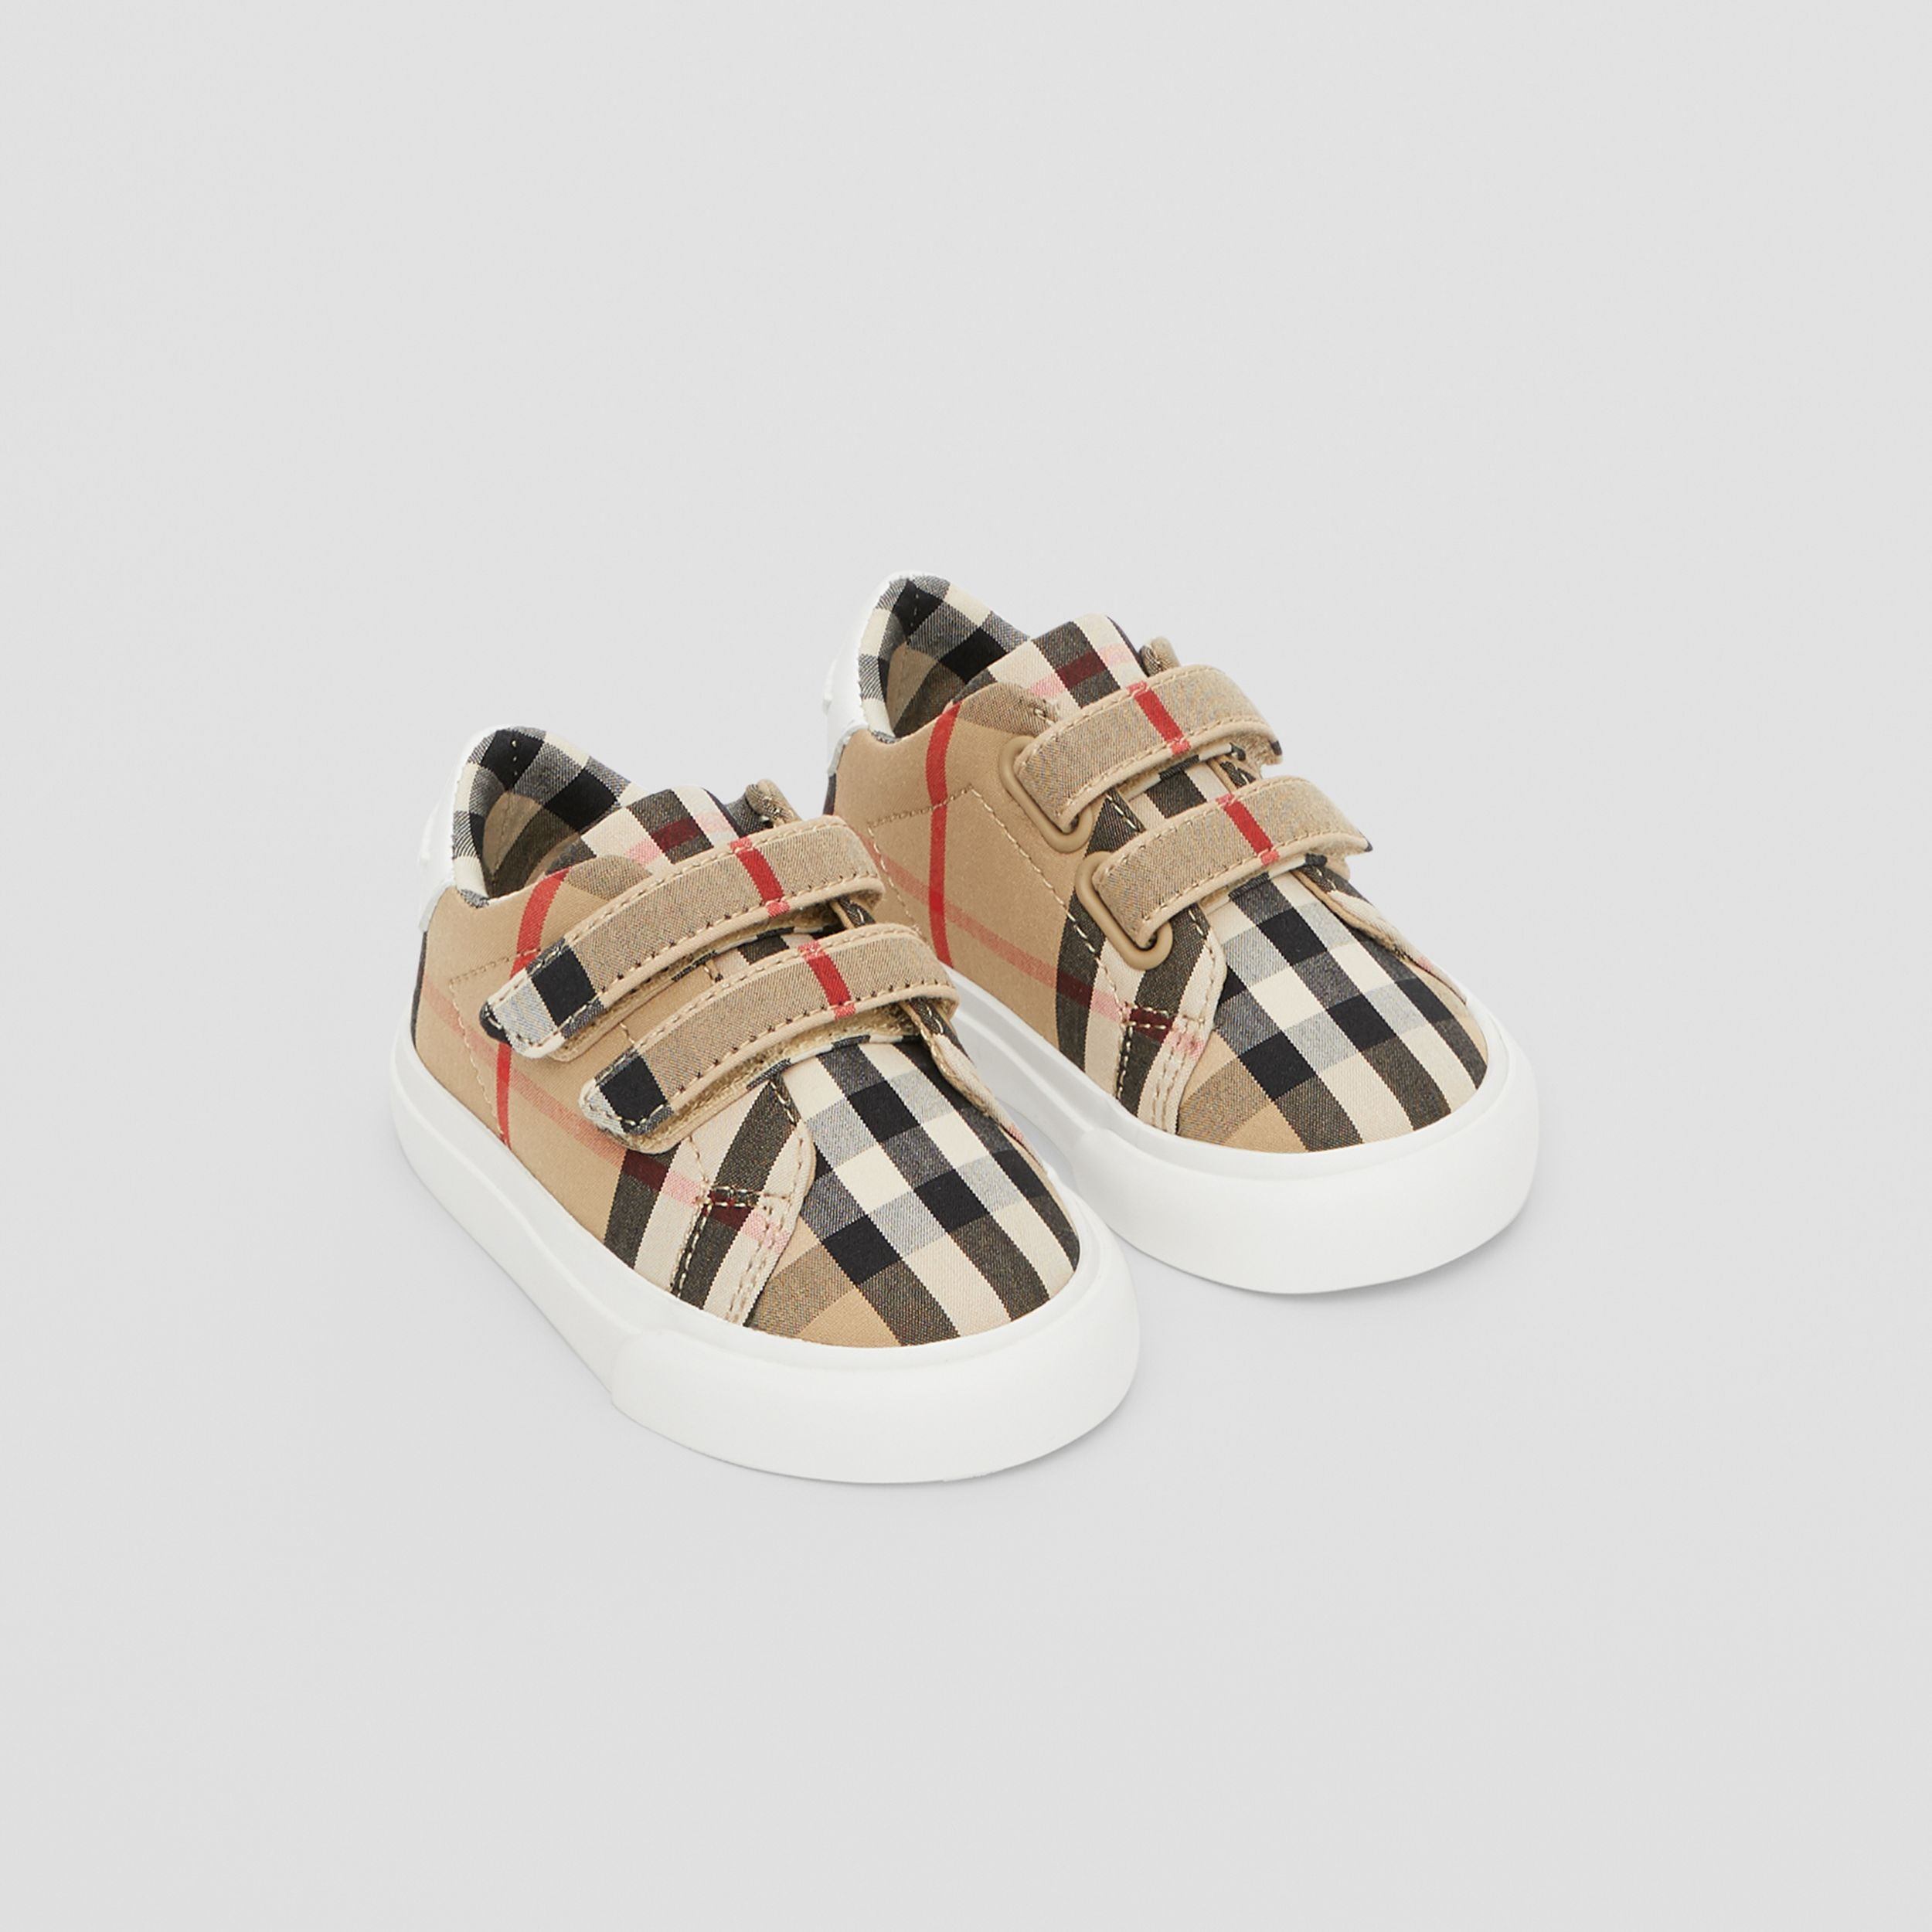 Vintage Check Cotton Sneakers in Archive Beige - Children | Burberry - 1